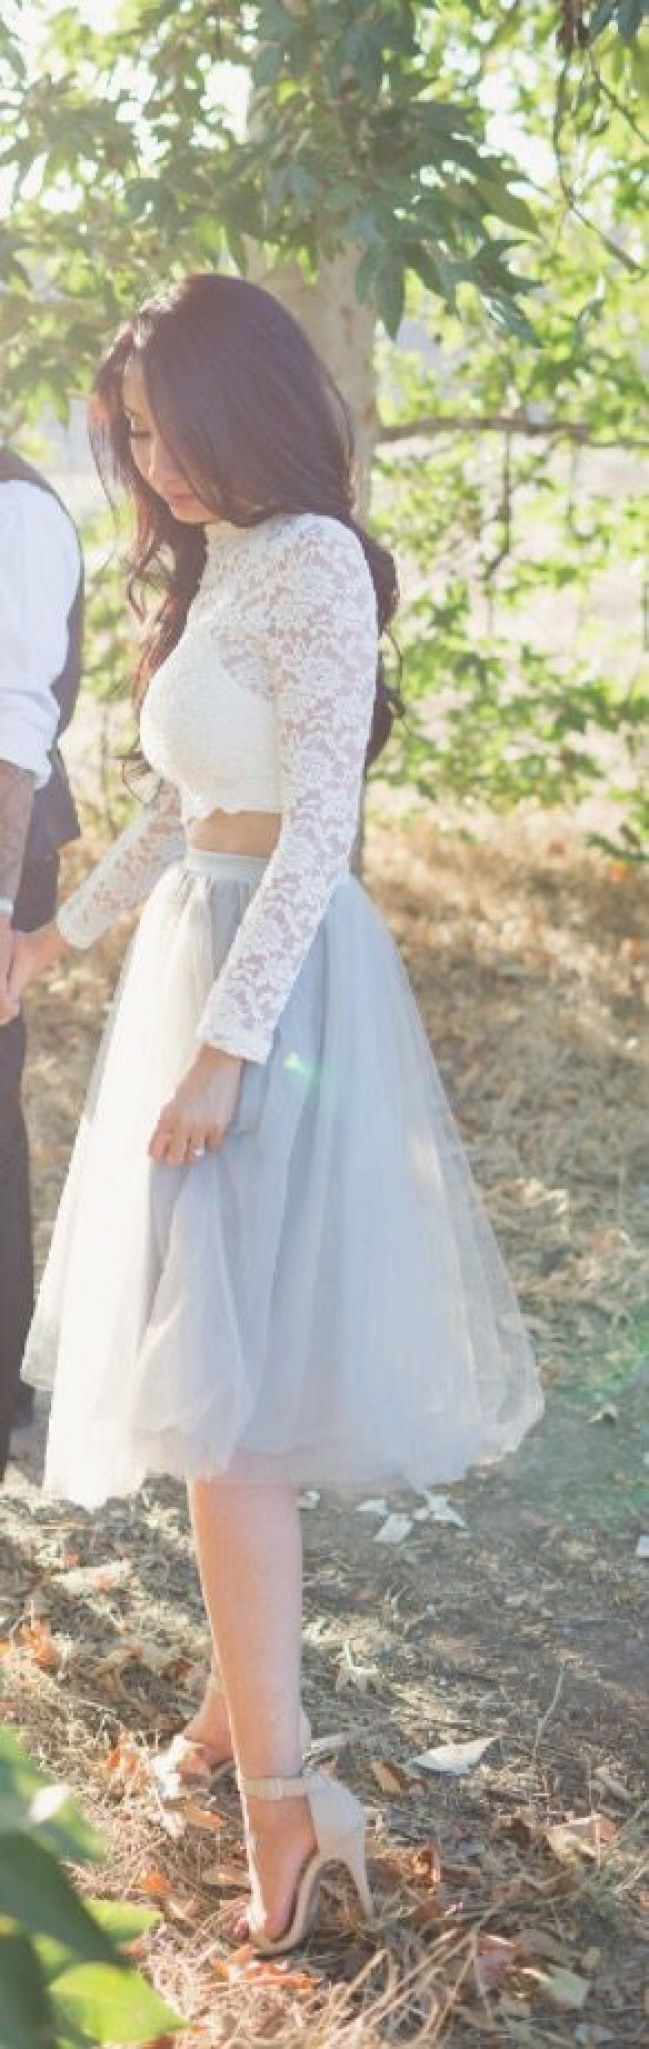 Tulle skirt outfits <3 / Tiulowe spódnice #tulle #skirt #outfit #romantic #cute More